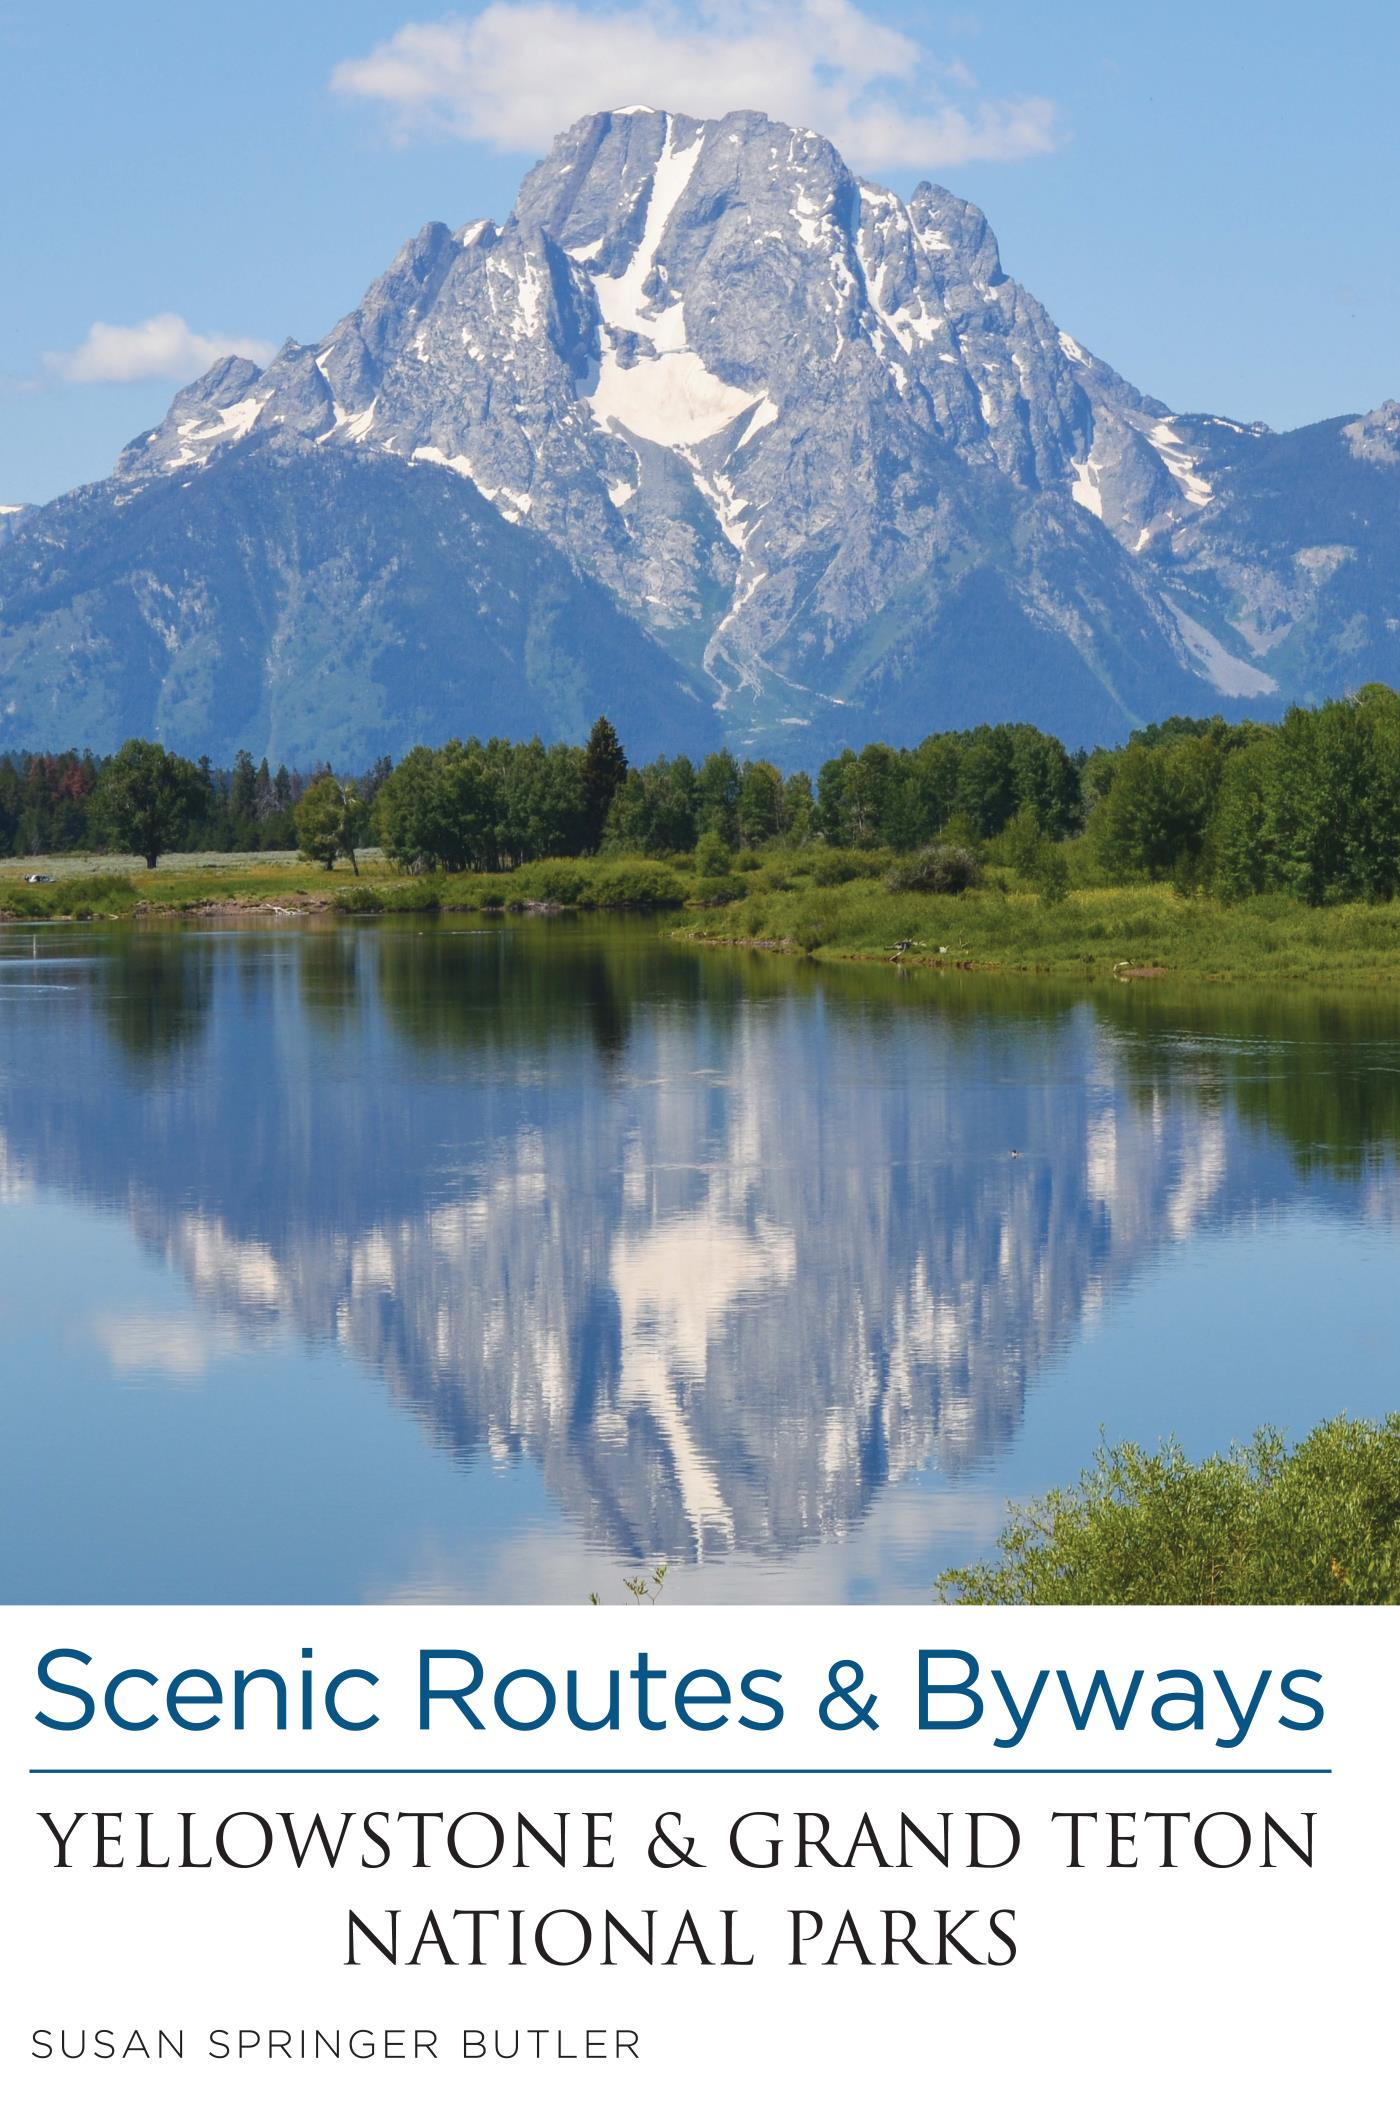 Scenic Routes & Byways Yellowstone & Grand Teton National Parks